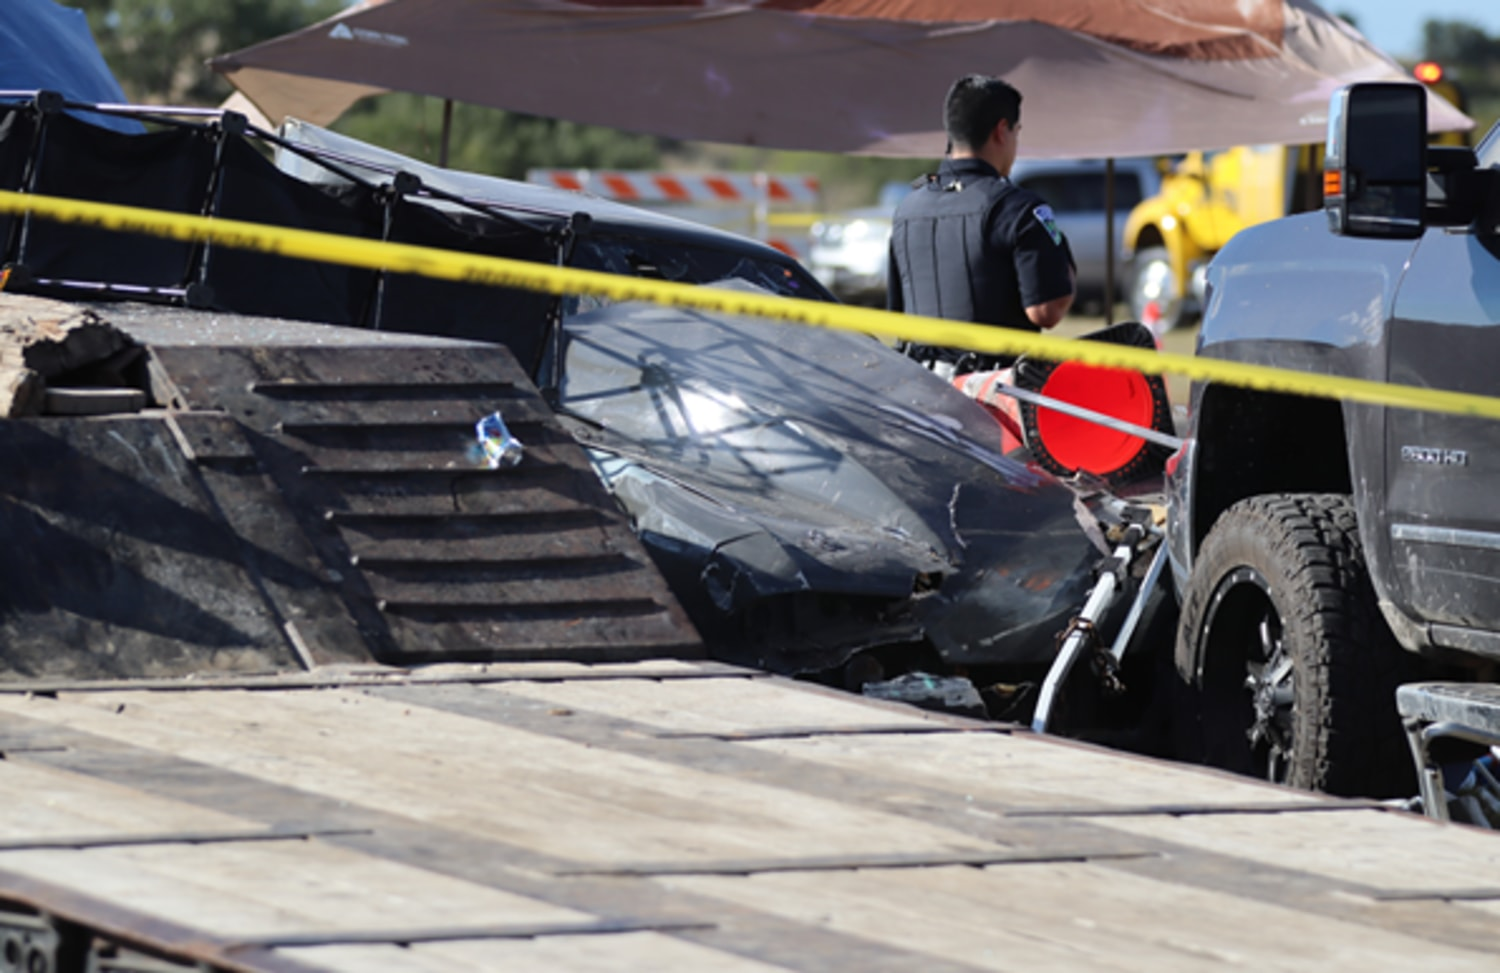 Two Children Dead, Eight Others Injured After Drag Racer Veers Off Track in Texas